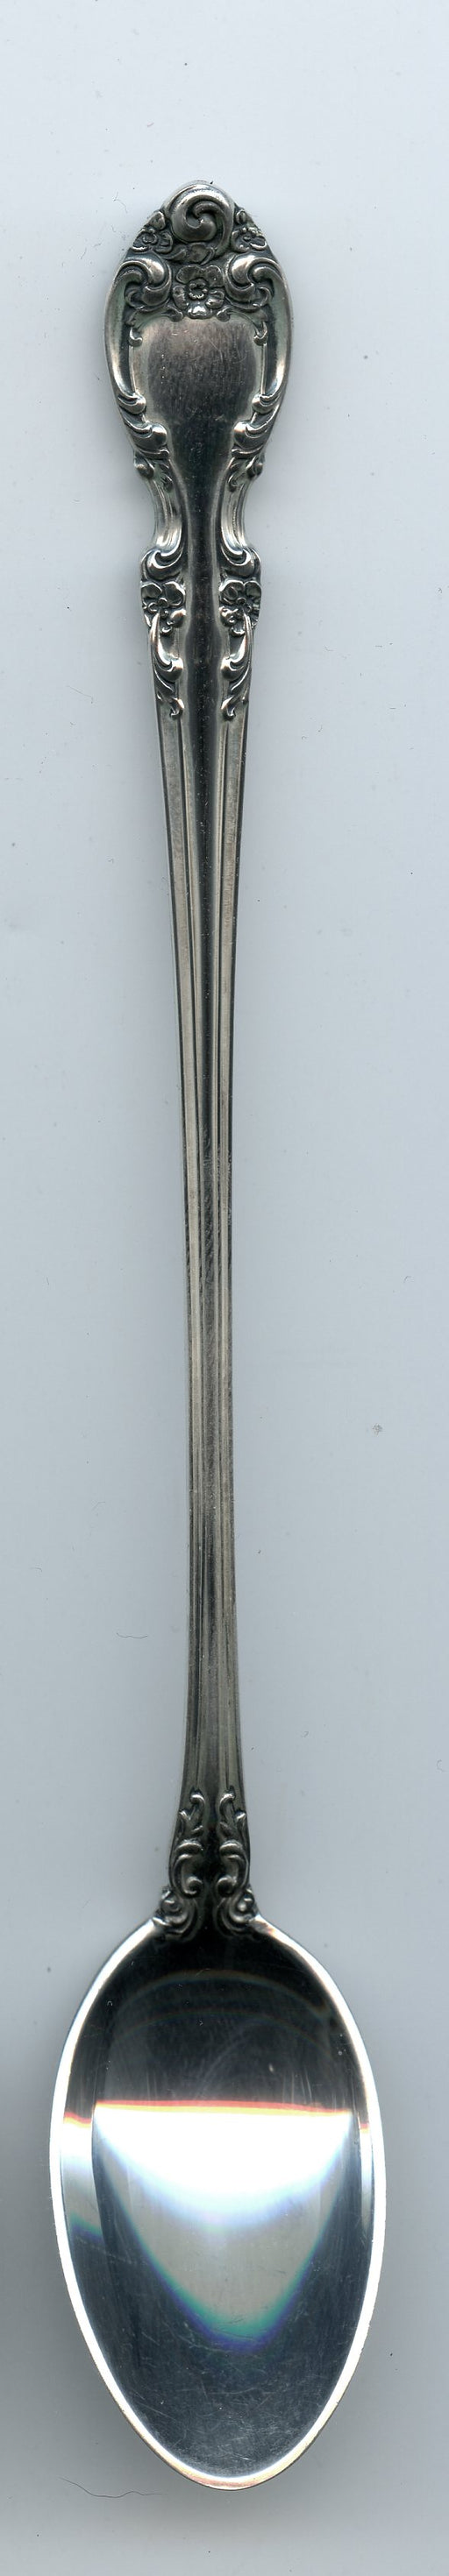 Melrose Iced Tea Spoon 7-5/8 inch by Gorham Sterling Silver   - TvMovieCards.com